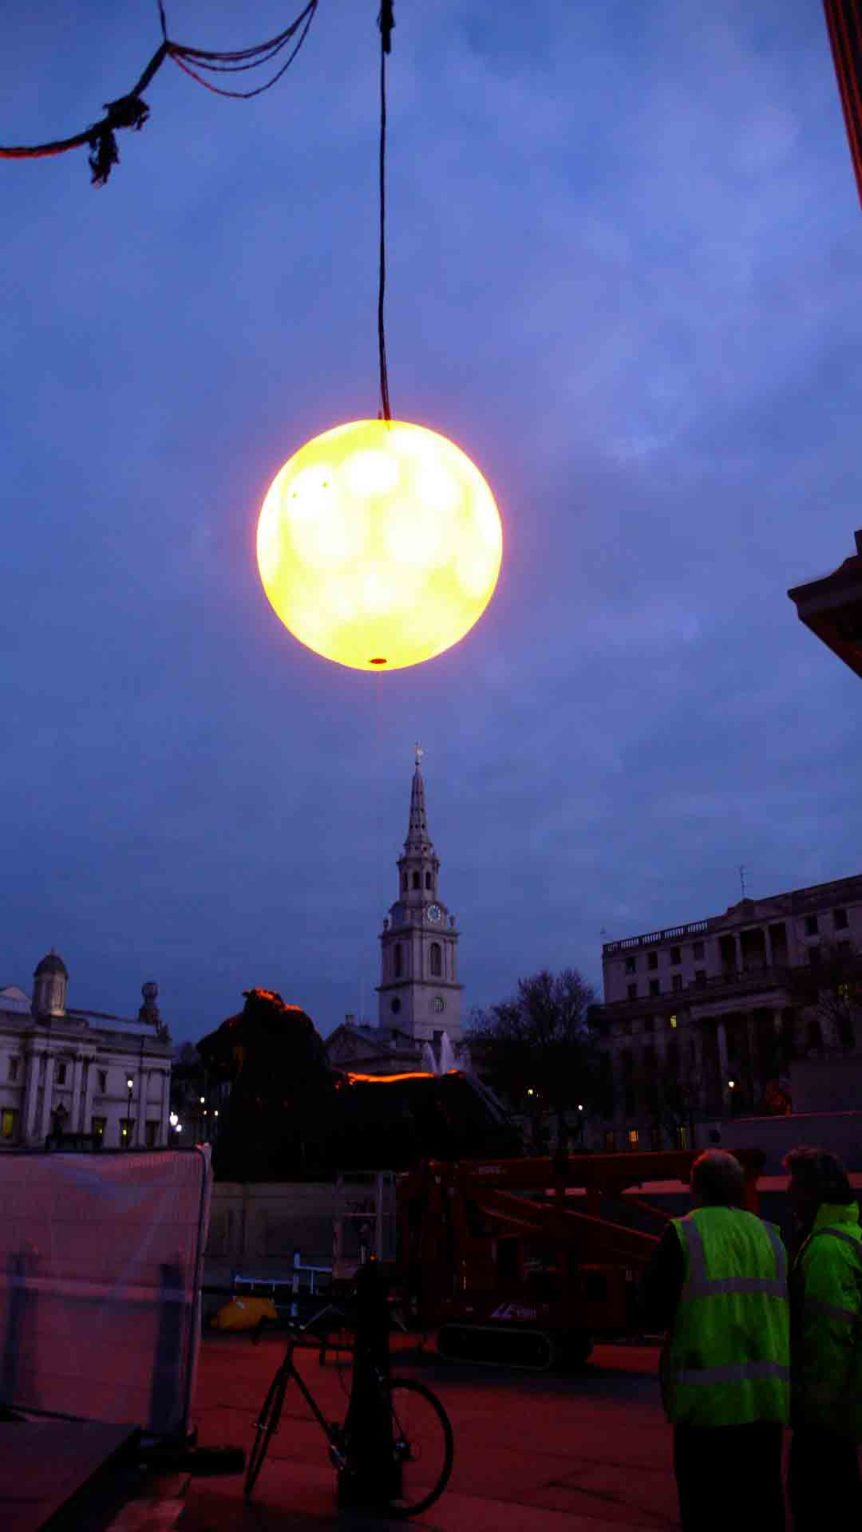 Inflatable moon light suspended with city skyline behind